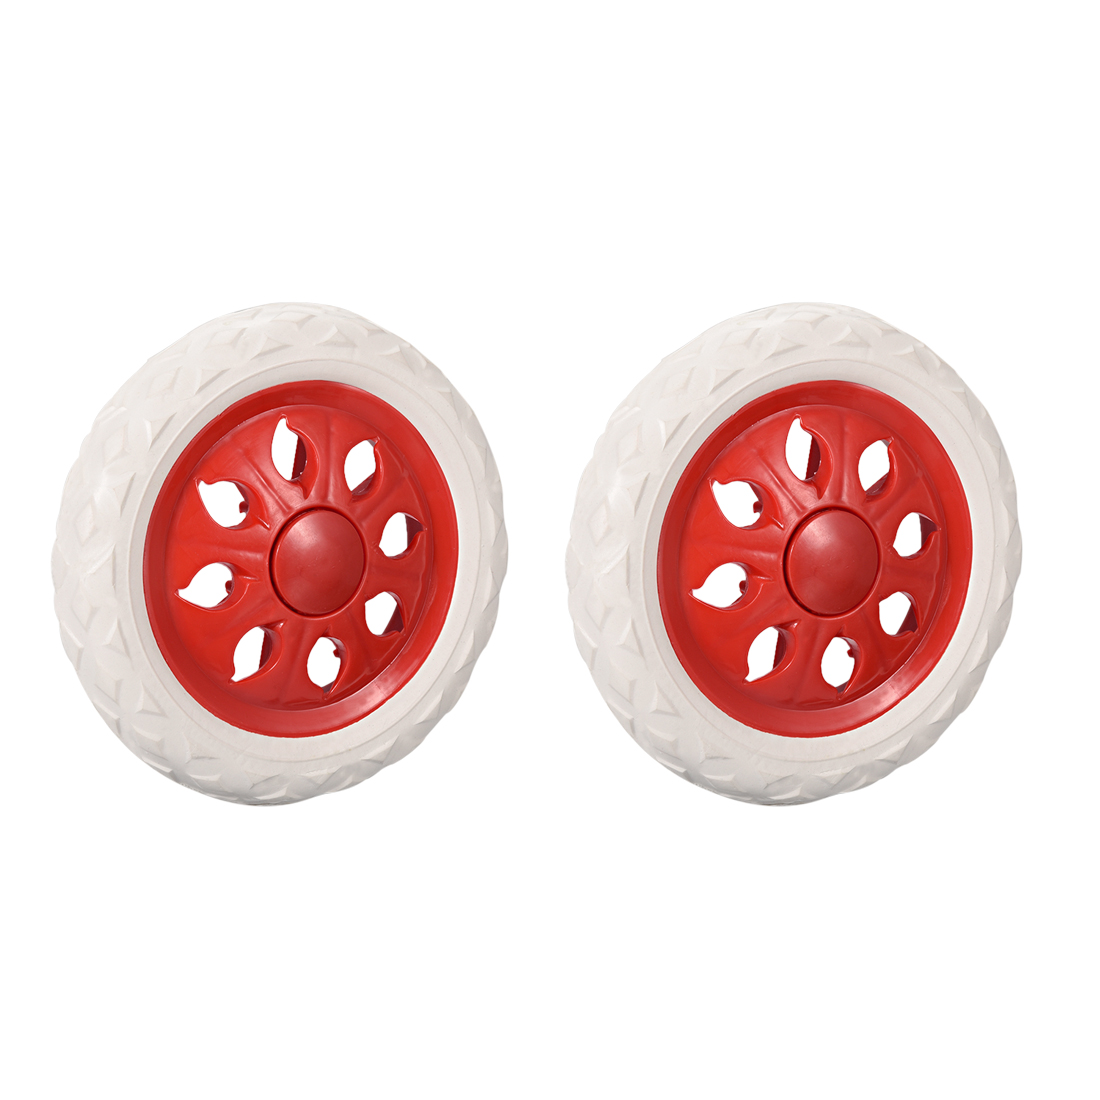 Uxcell 2pcs Shopping Cart Wheels Trolley Caster Replacement 6.5 Inch Dia Rubber Foaming Light Blue Pink Brown Red Blue